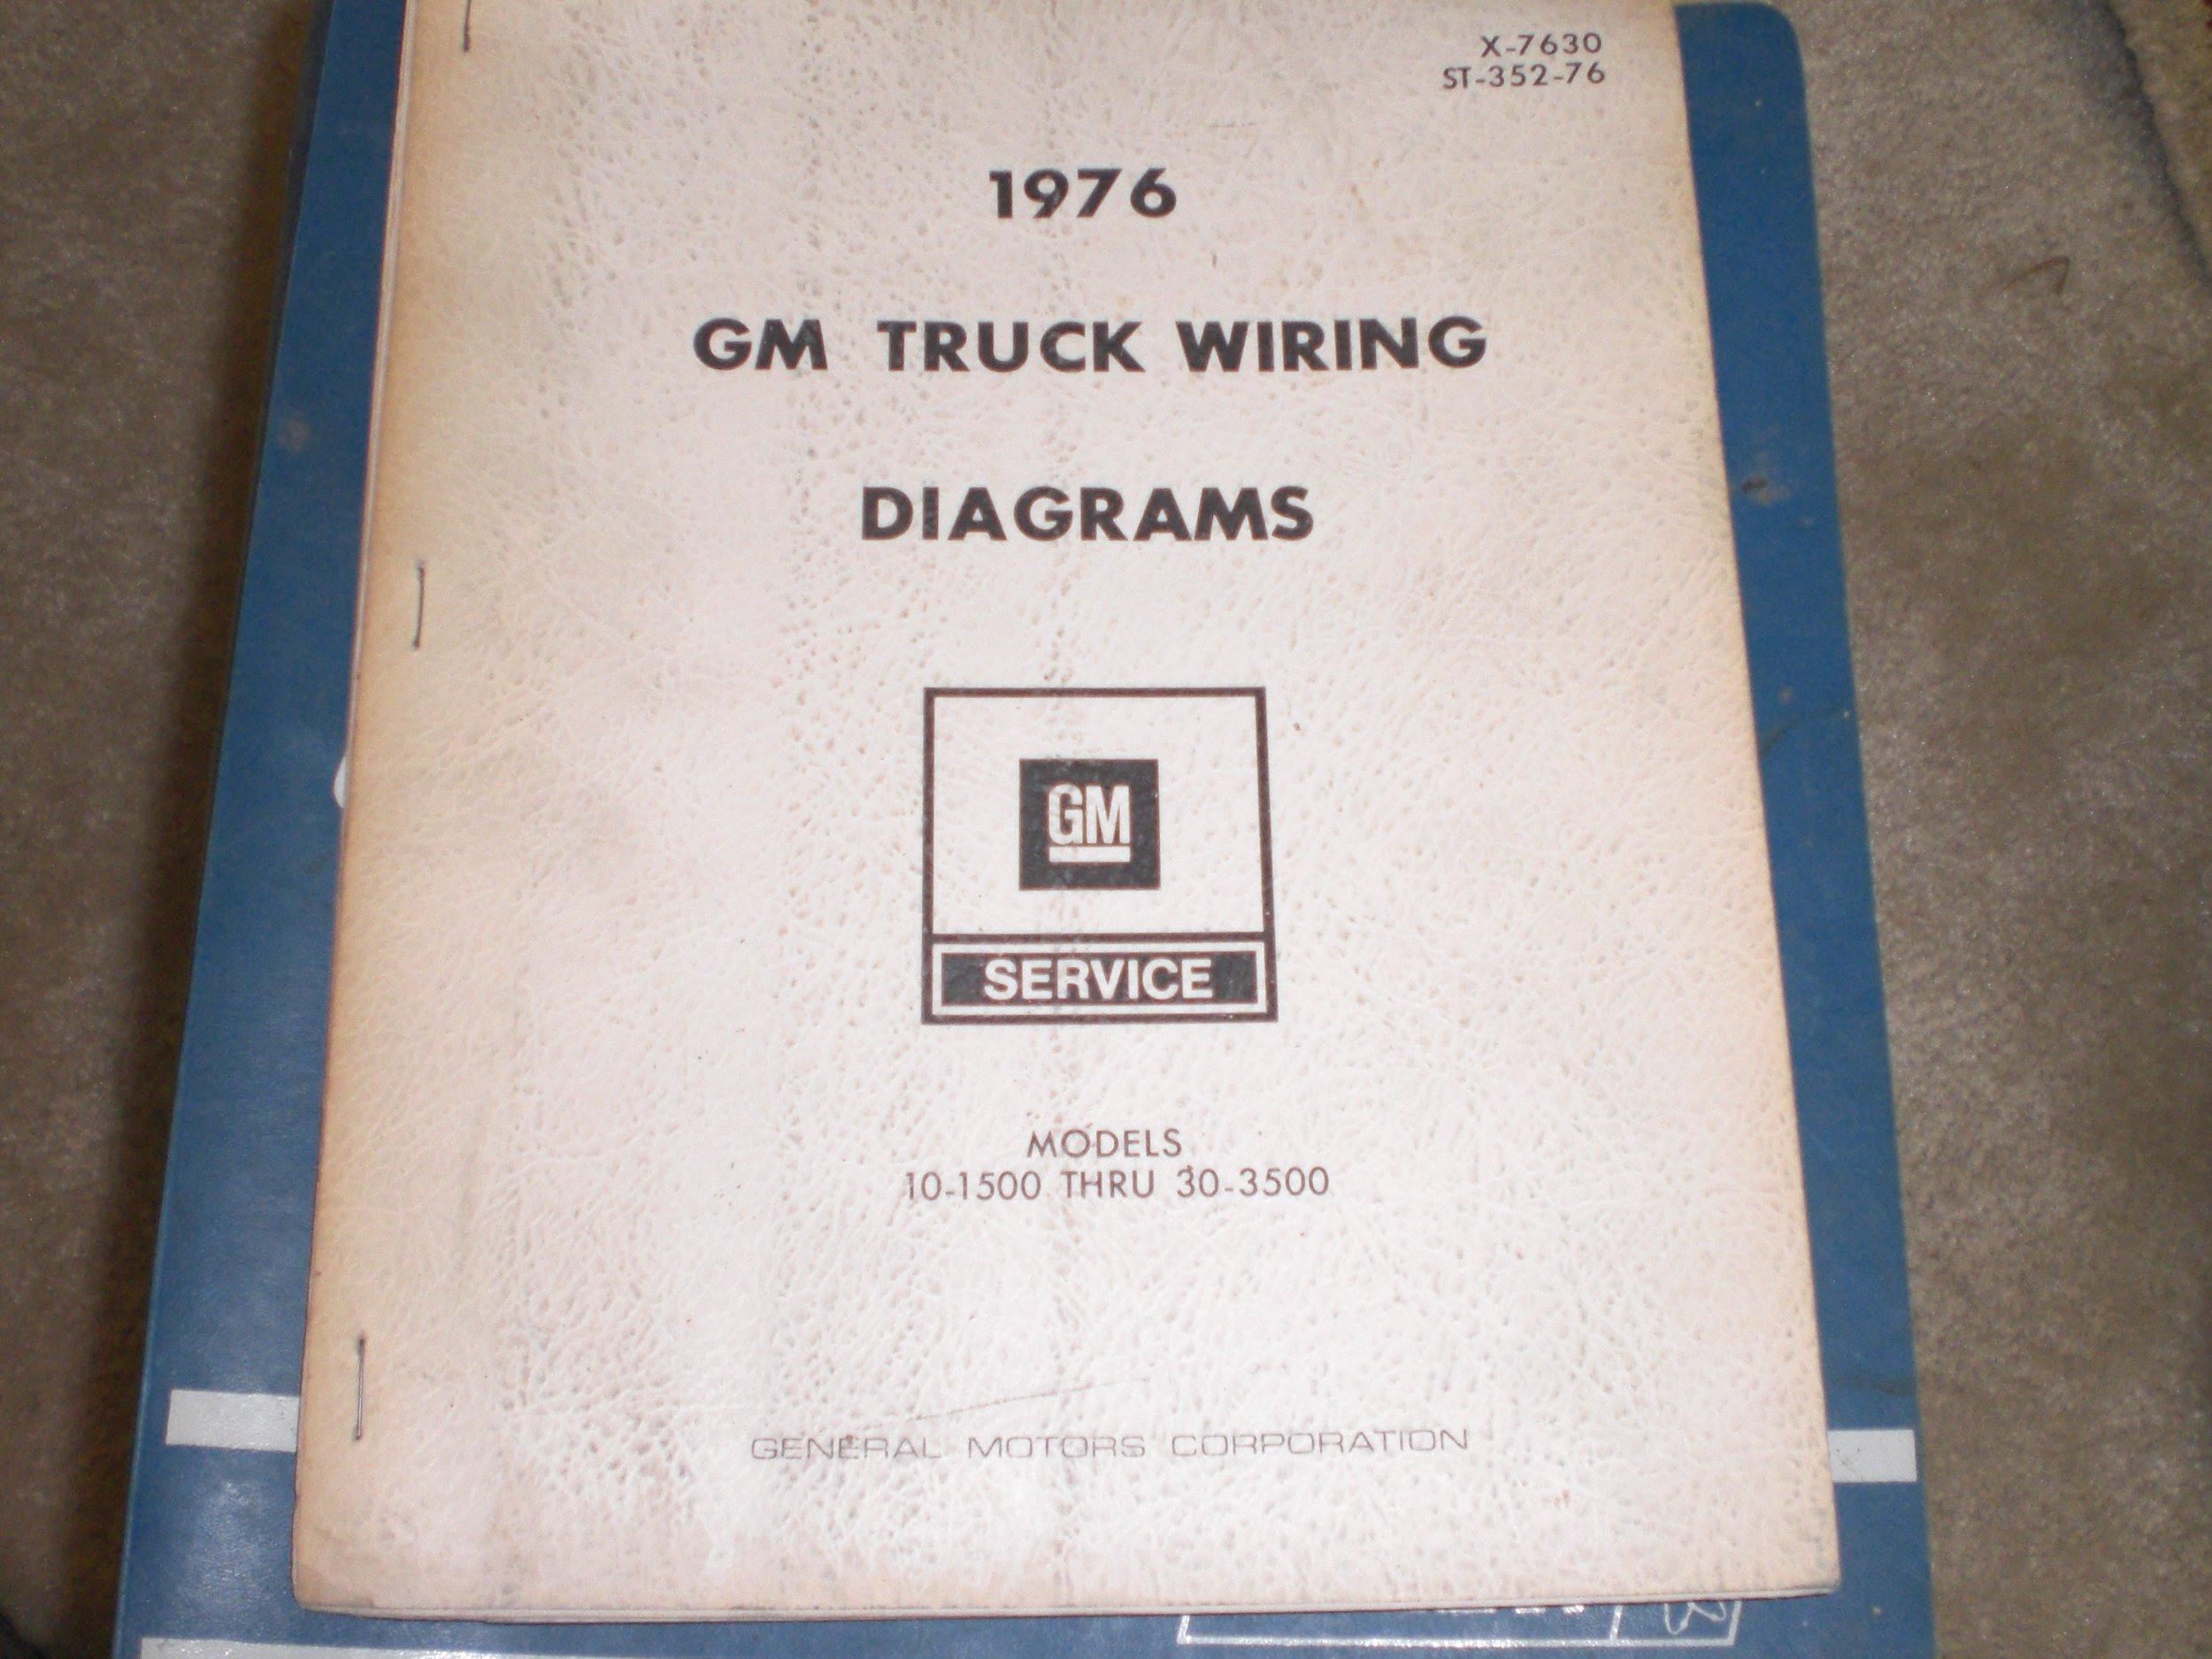 Gm Truck Wiring Diagrams 1976